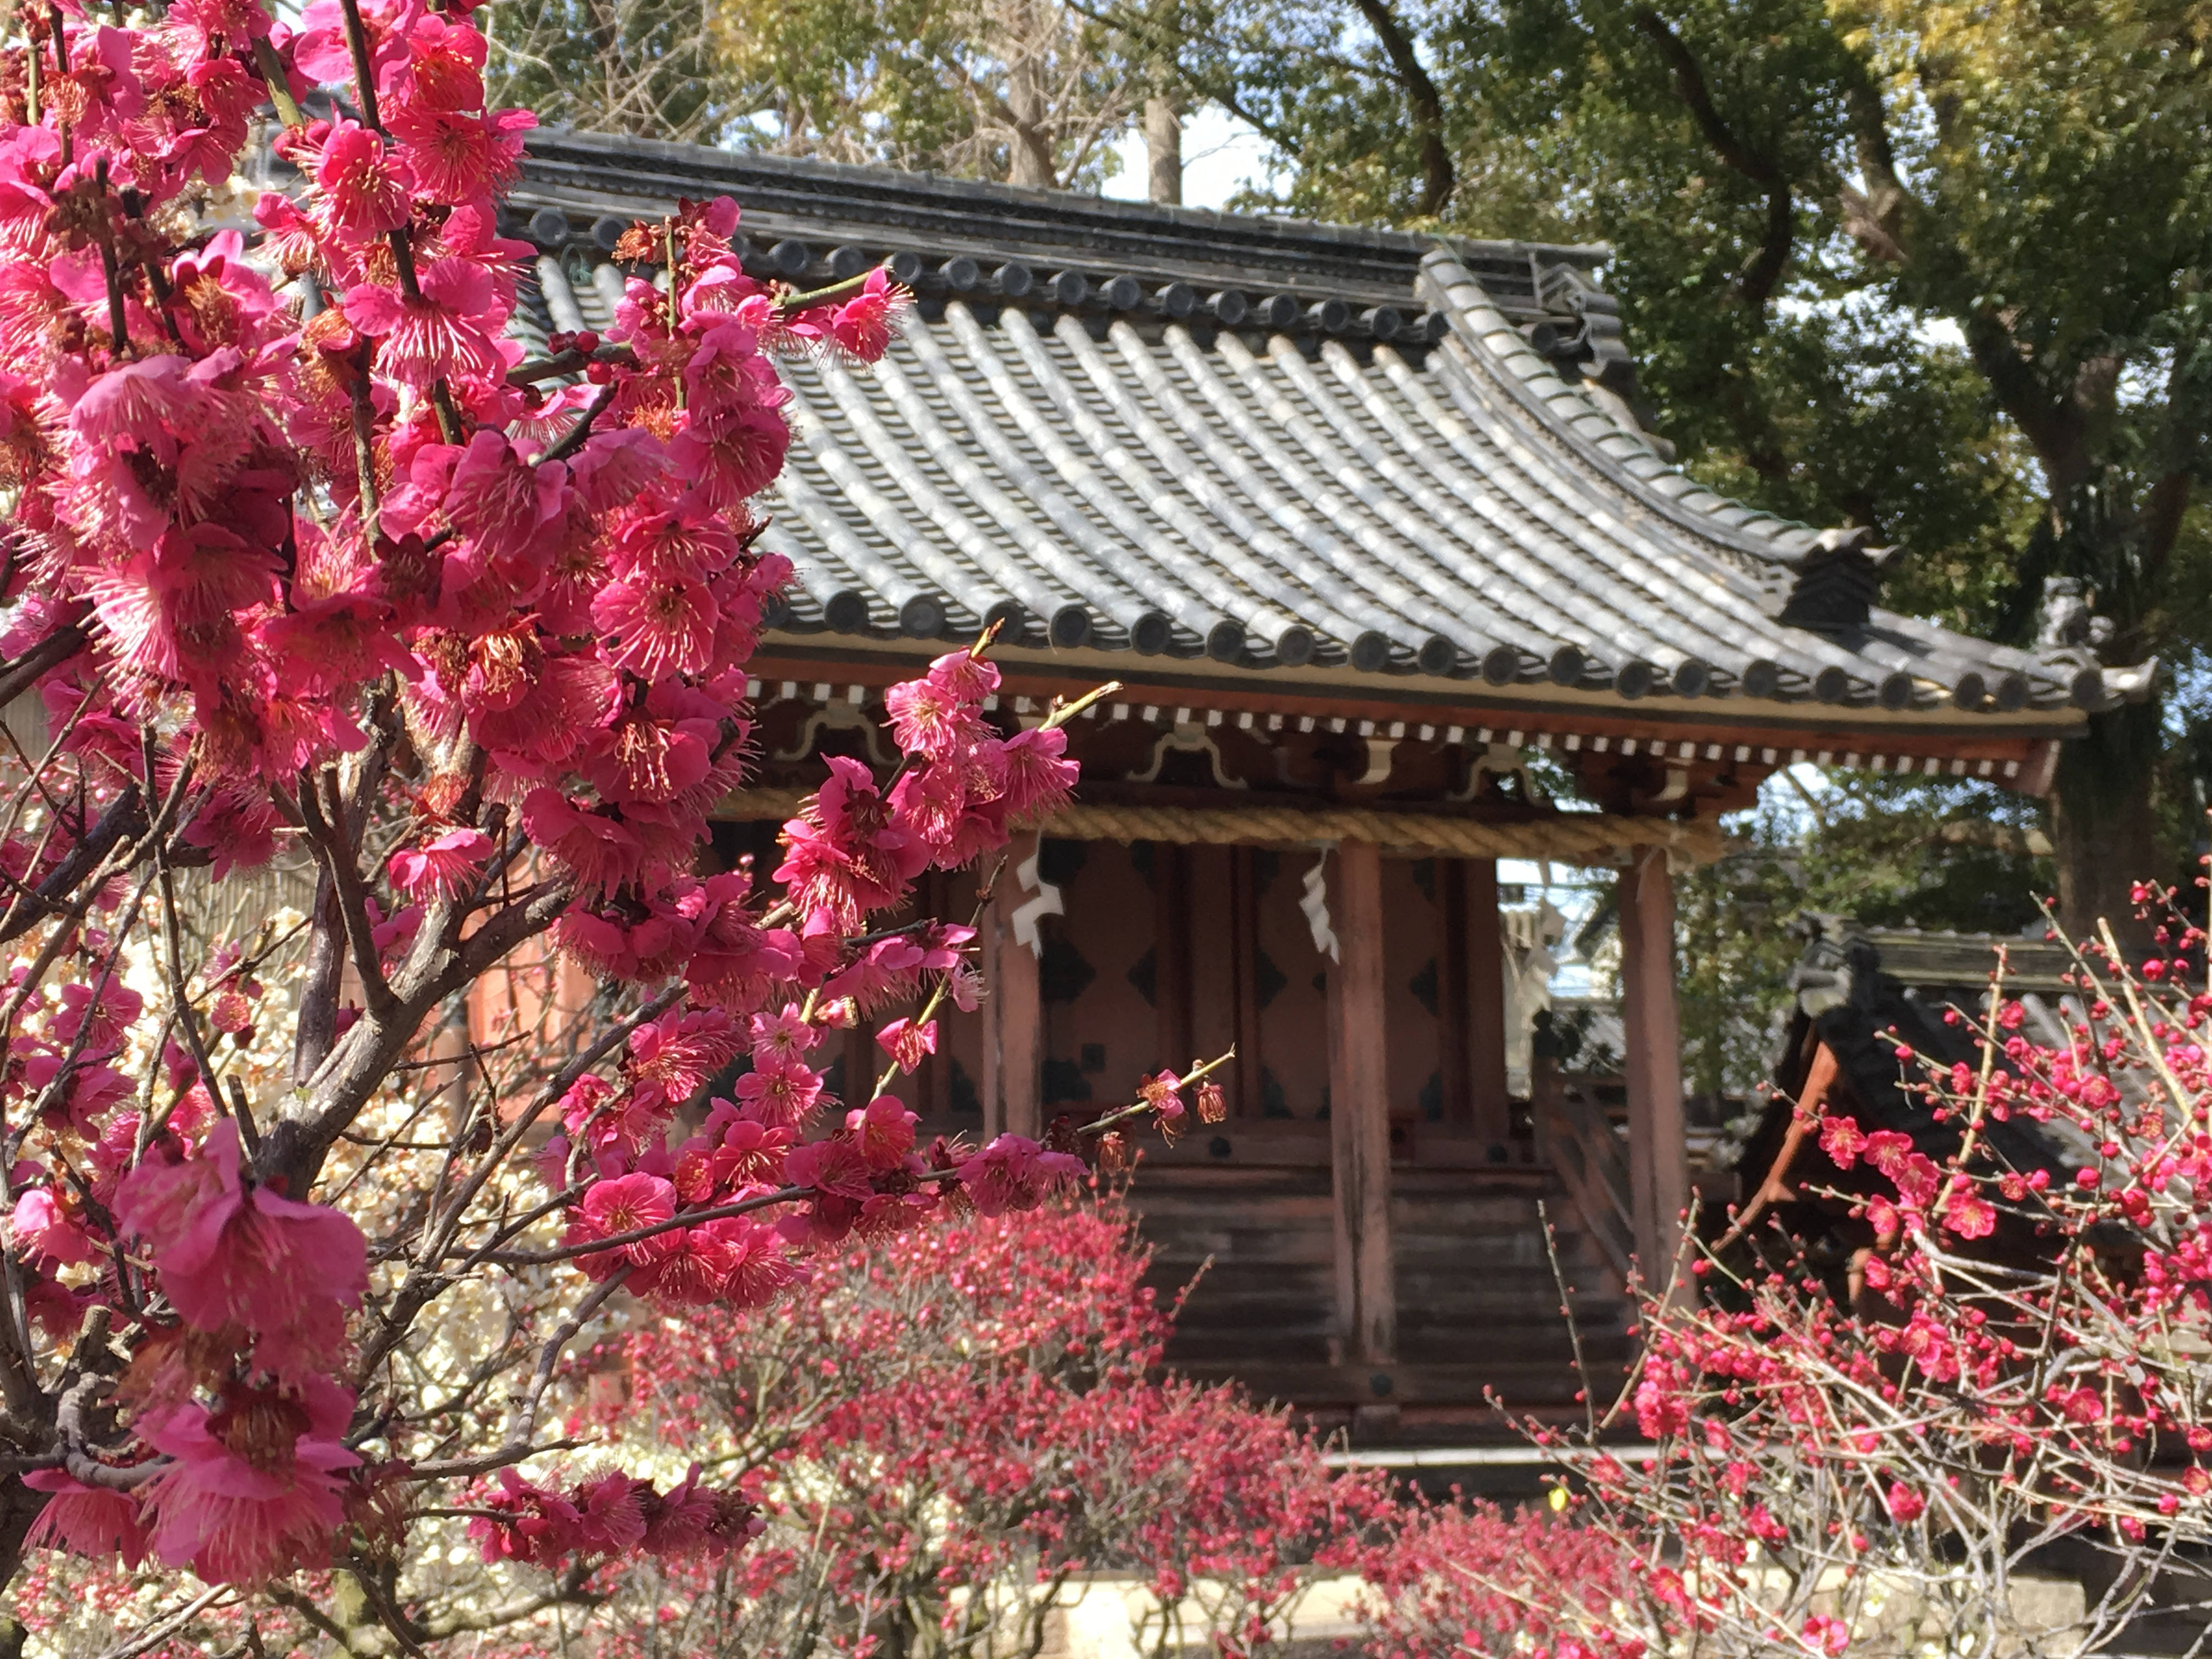 red Japanese plum blossoms with wooden shinto shrine in background